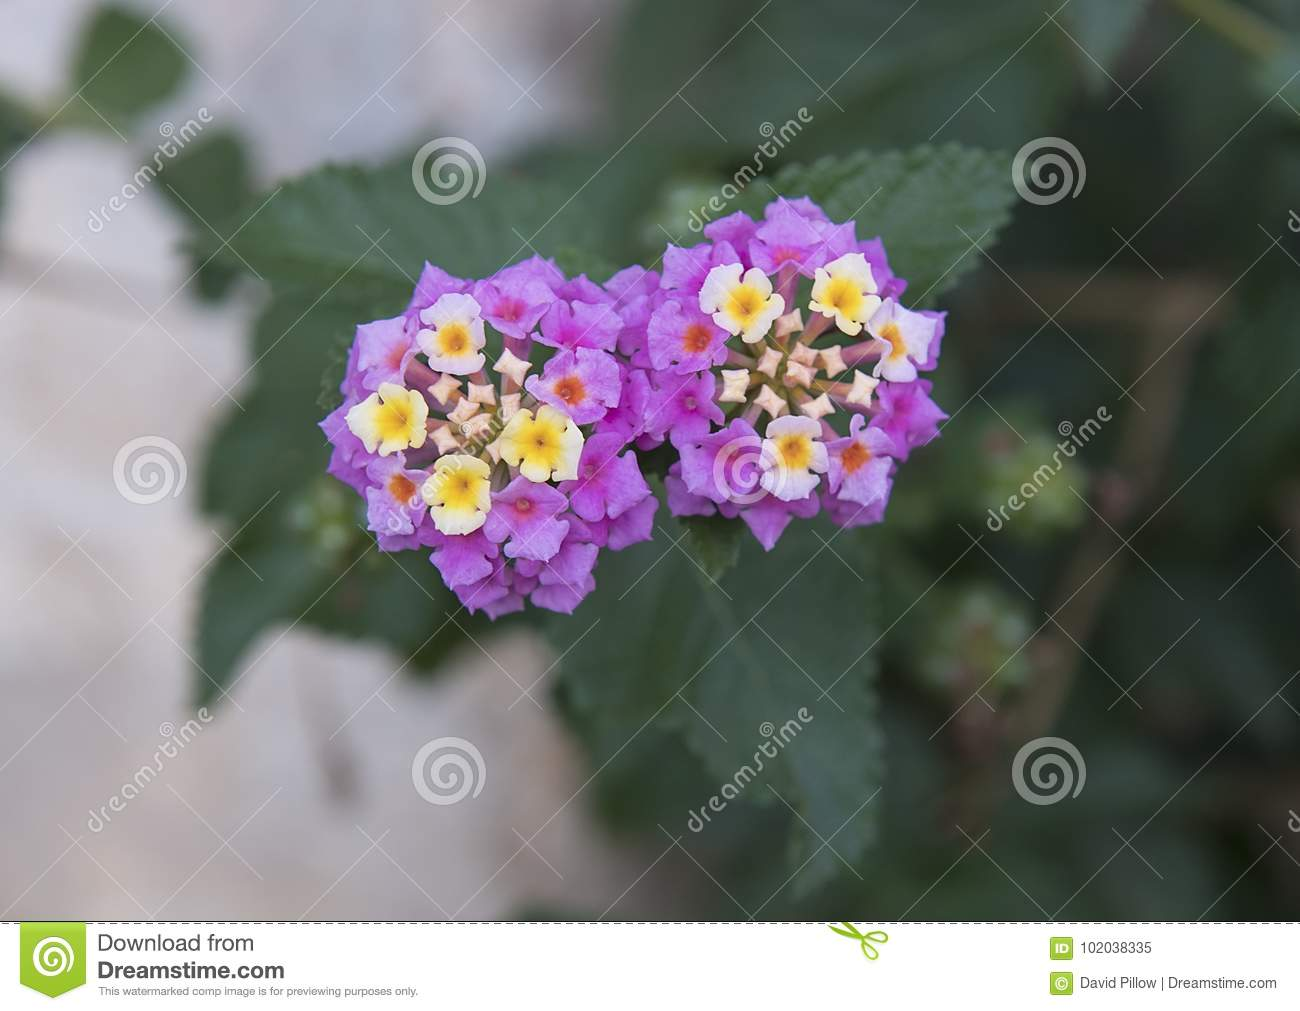 Purple And White Flower Cluster Of A Lantana Plant Stock Image